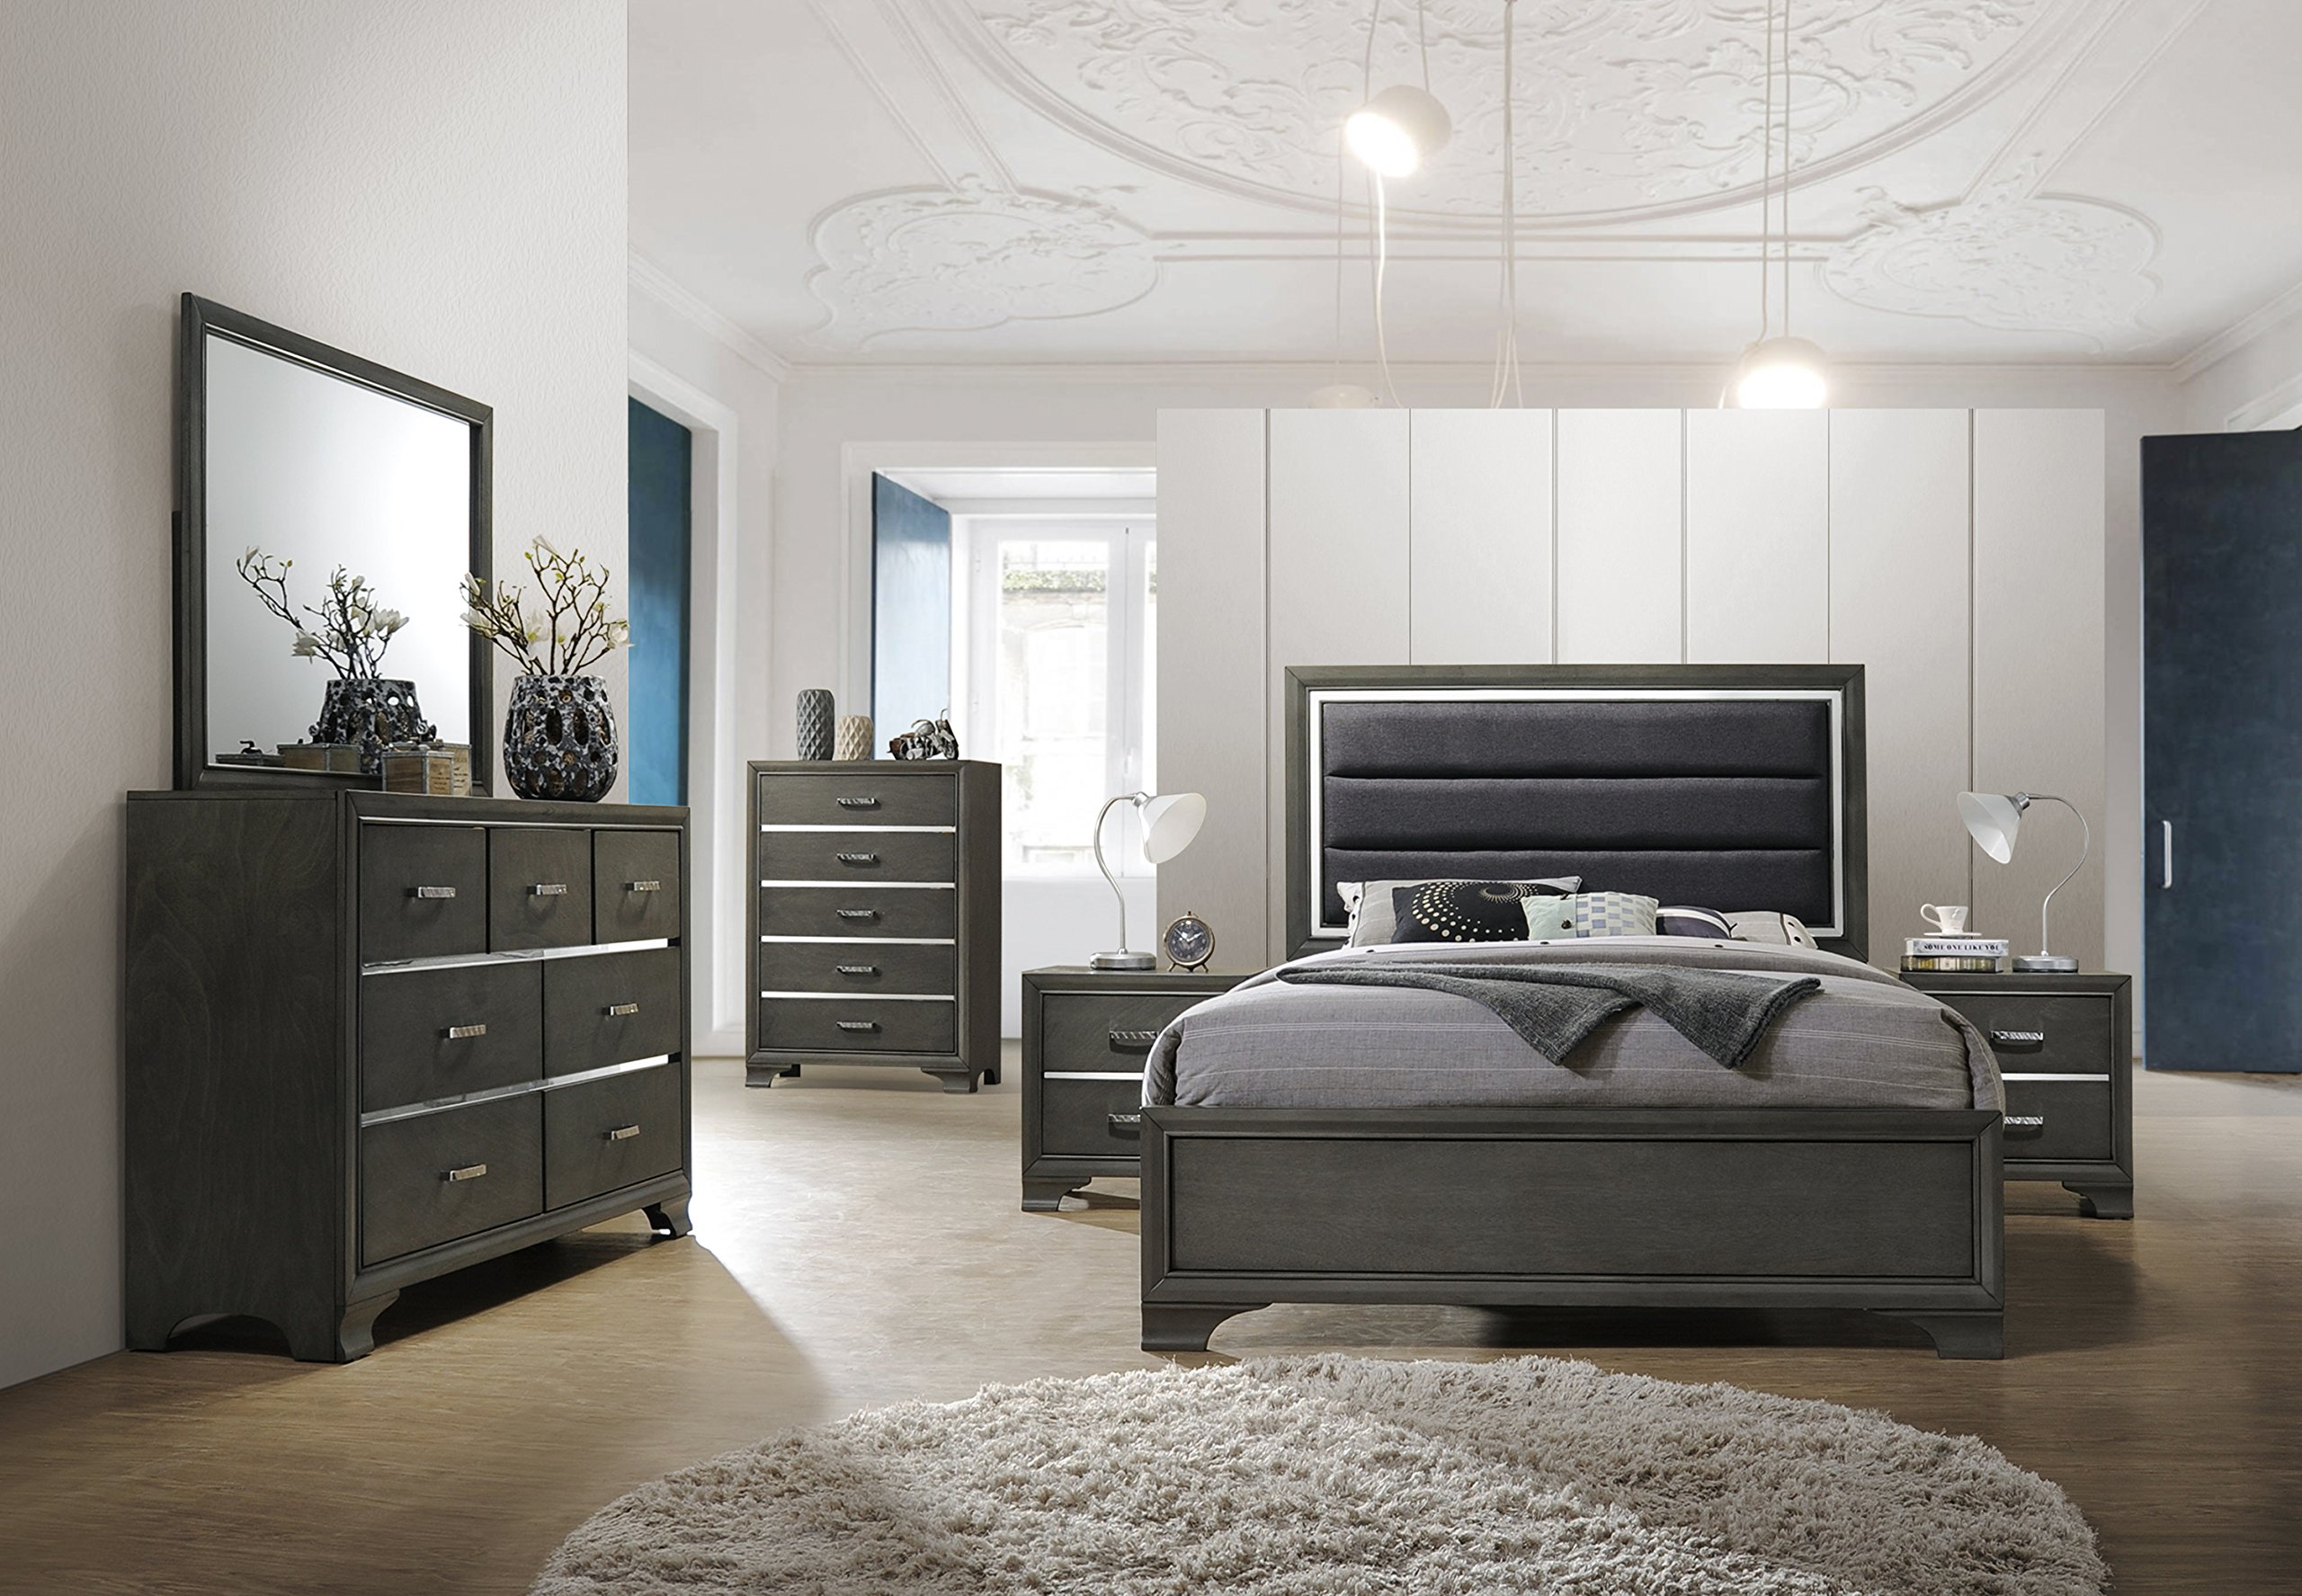 Kings Brand Furniture - 6-Piece Gray Wood with Faux Leather Headboard Queen Bedroom Set. Bed, Dresser, Mirror, Chest, 2 Night Stands by Kings Brand Furniture